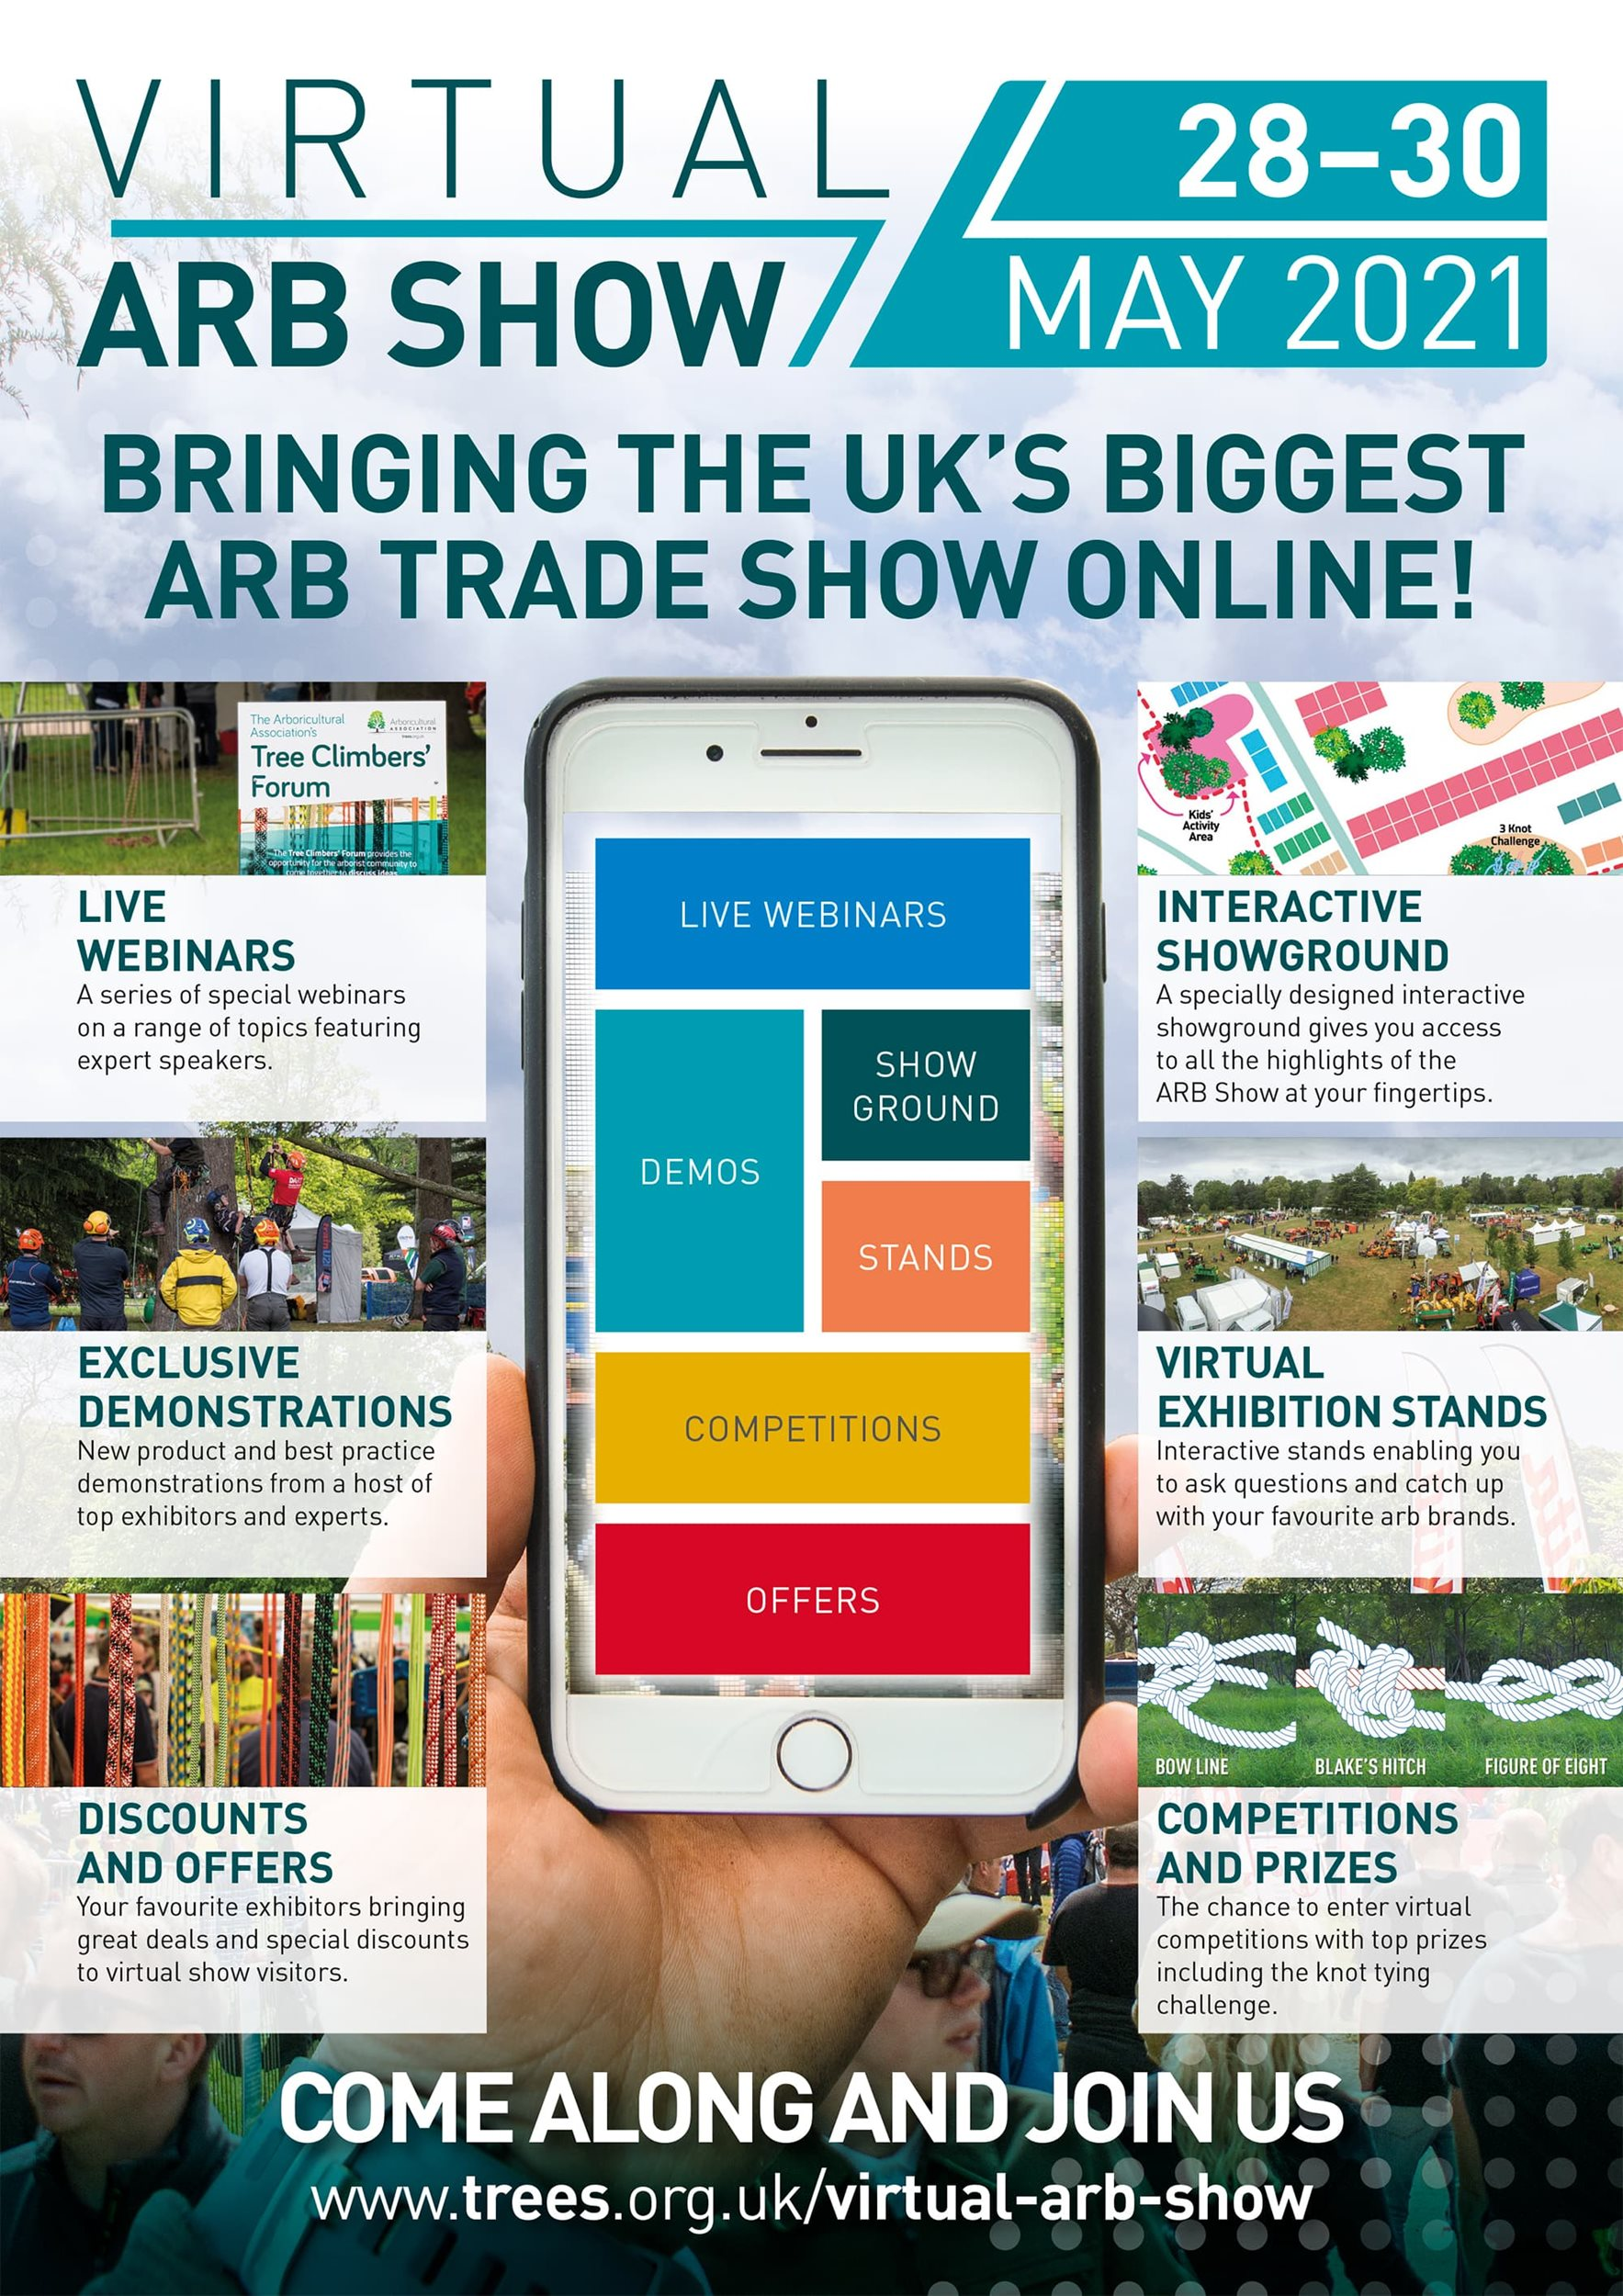 The Virtual ARB Show 2021